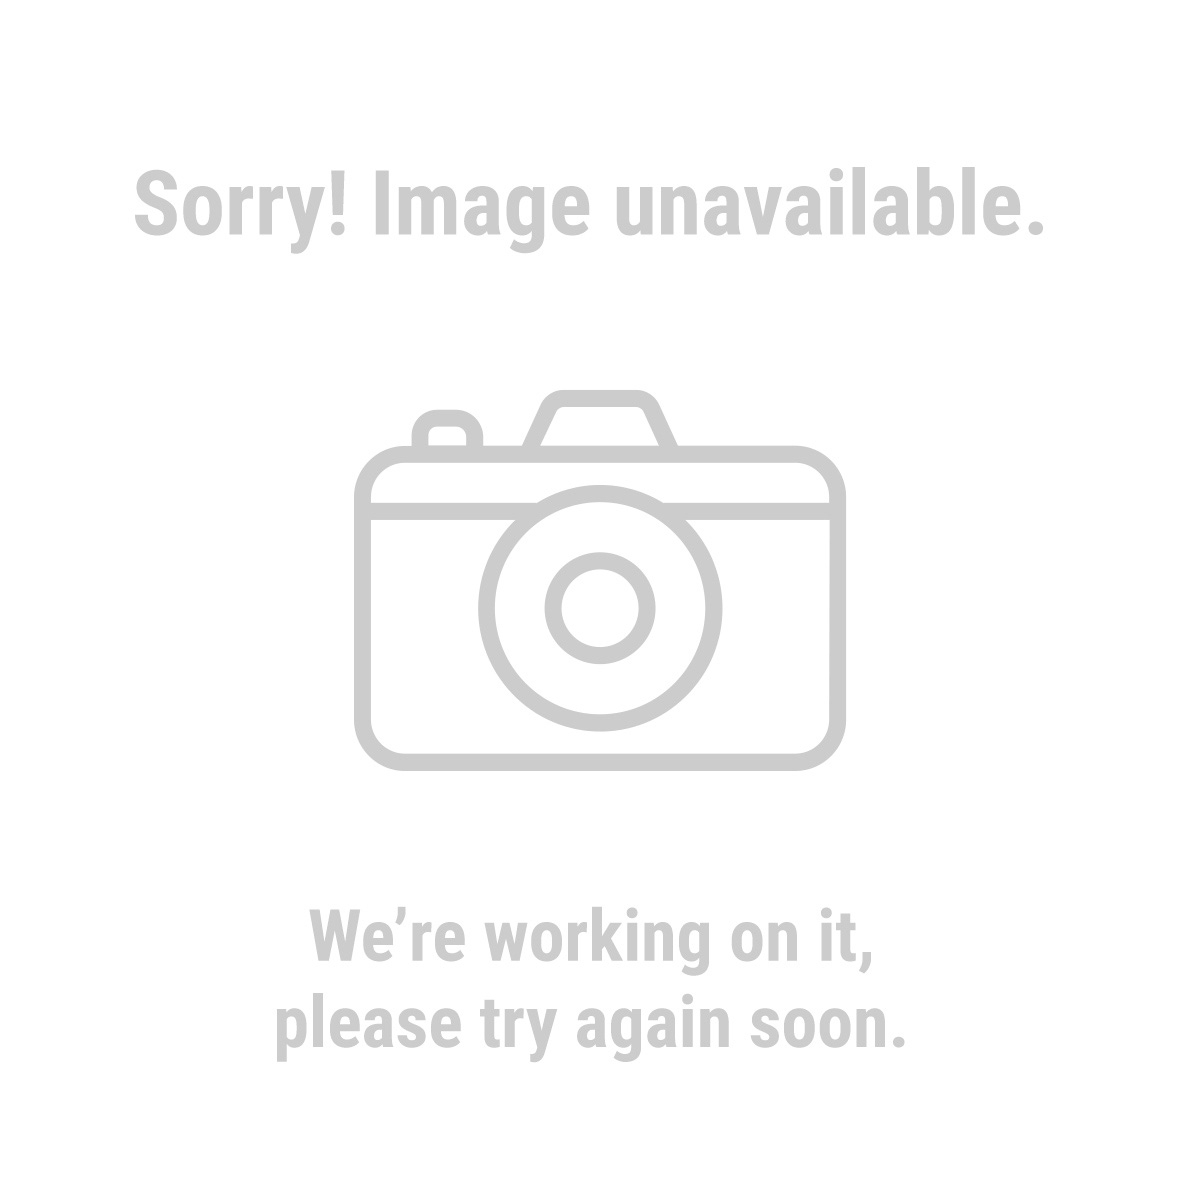 Storehouse 67677 225 Piece Nitrile O-Ring Assortment